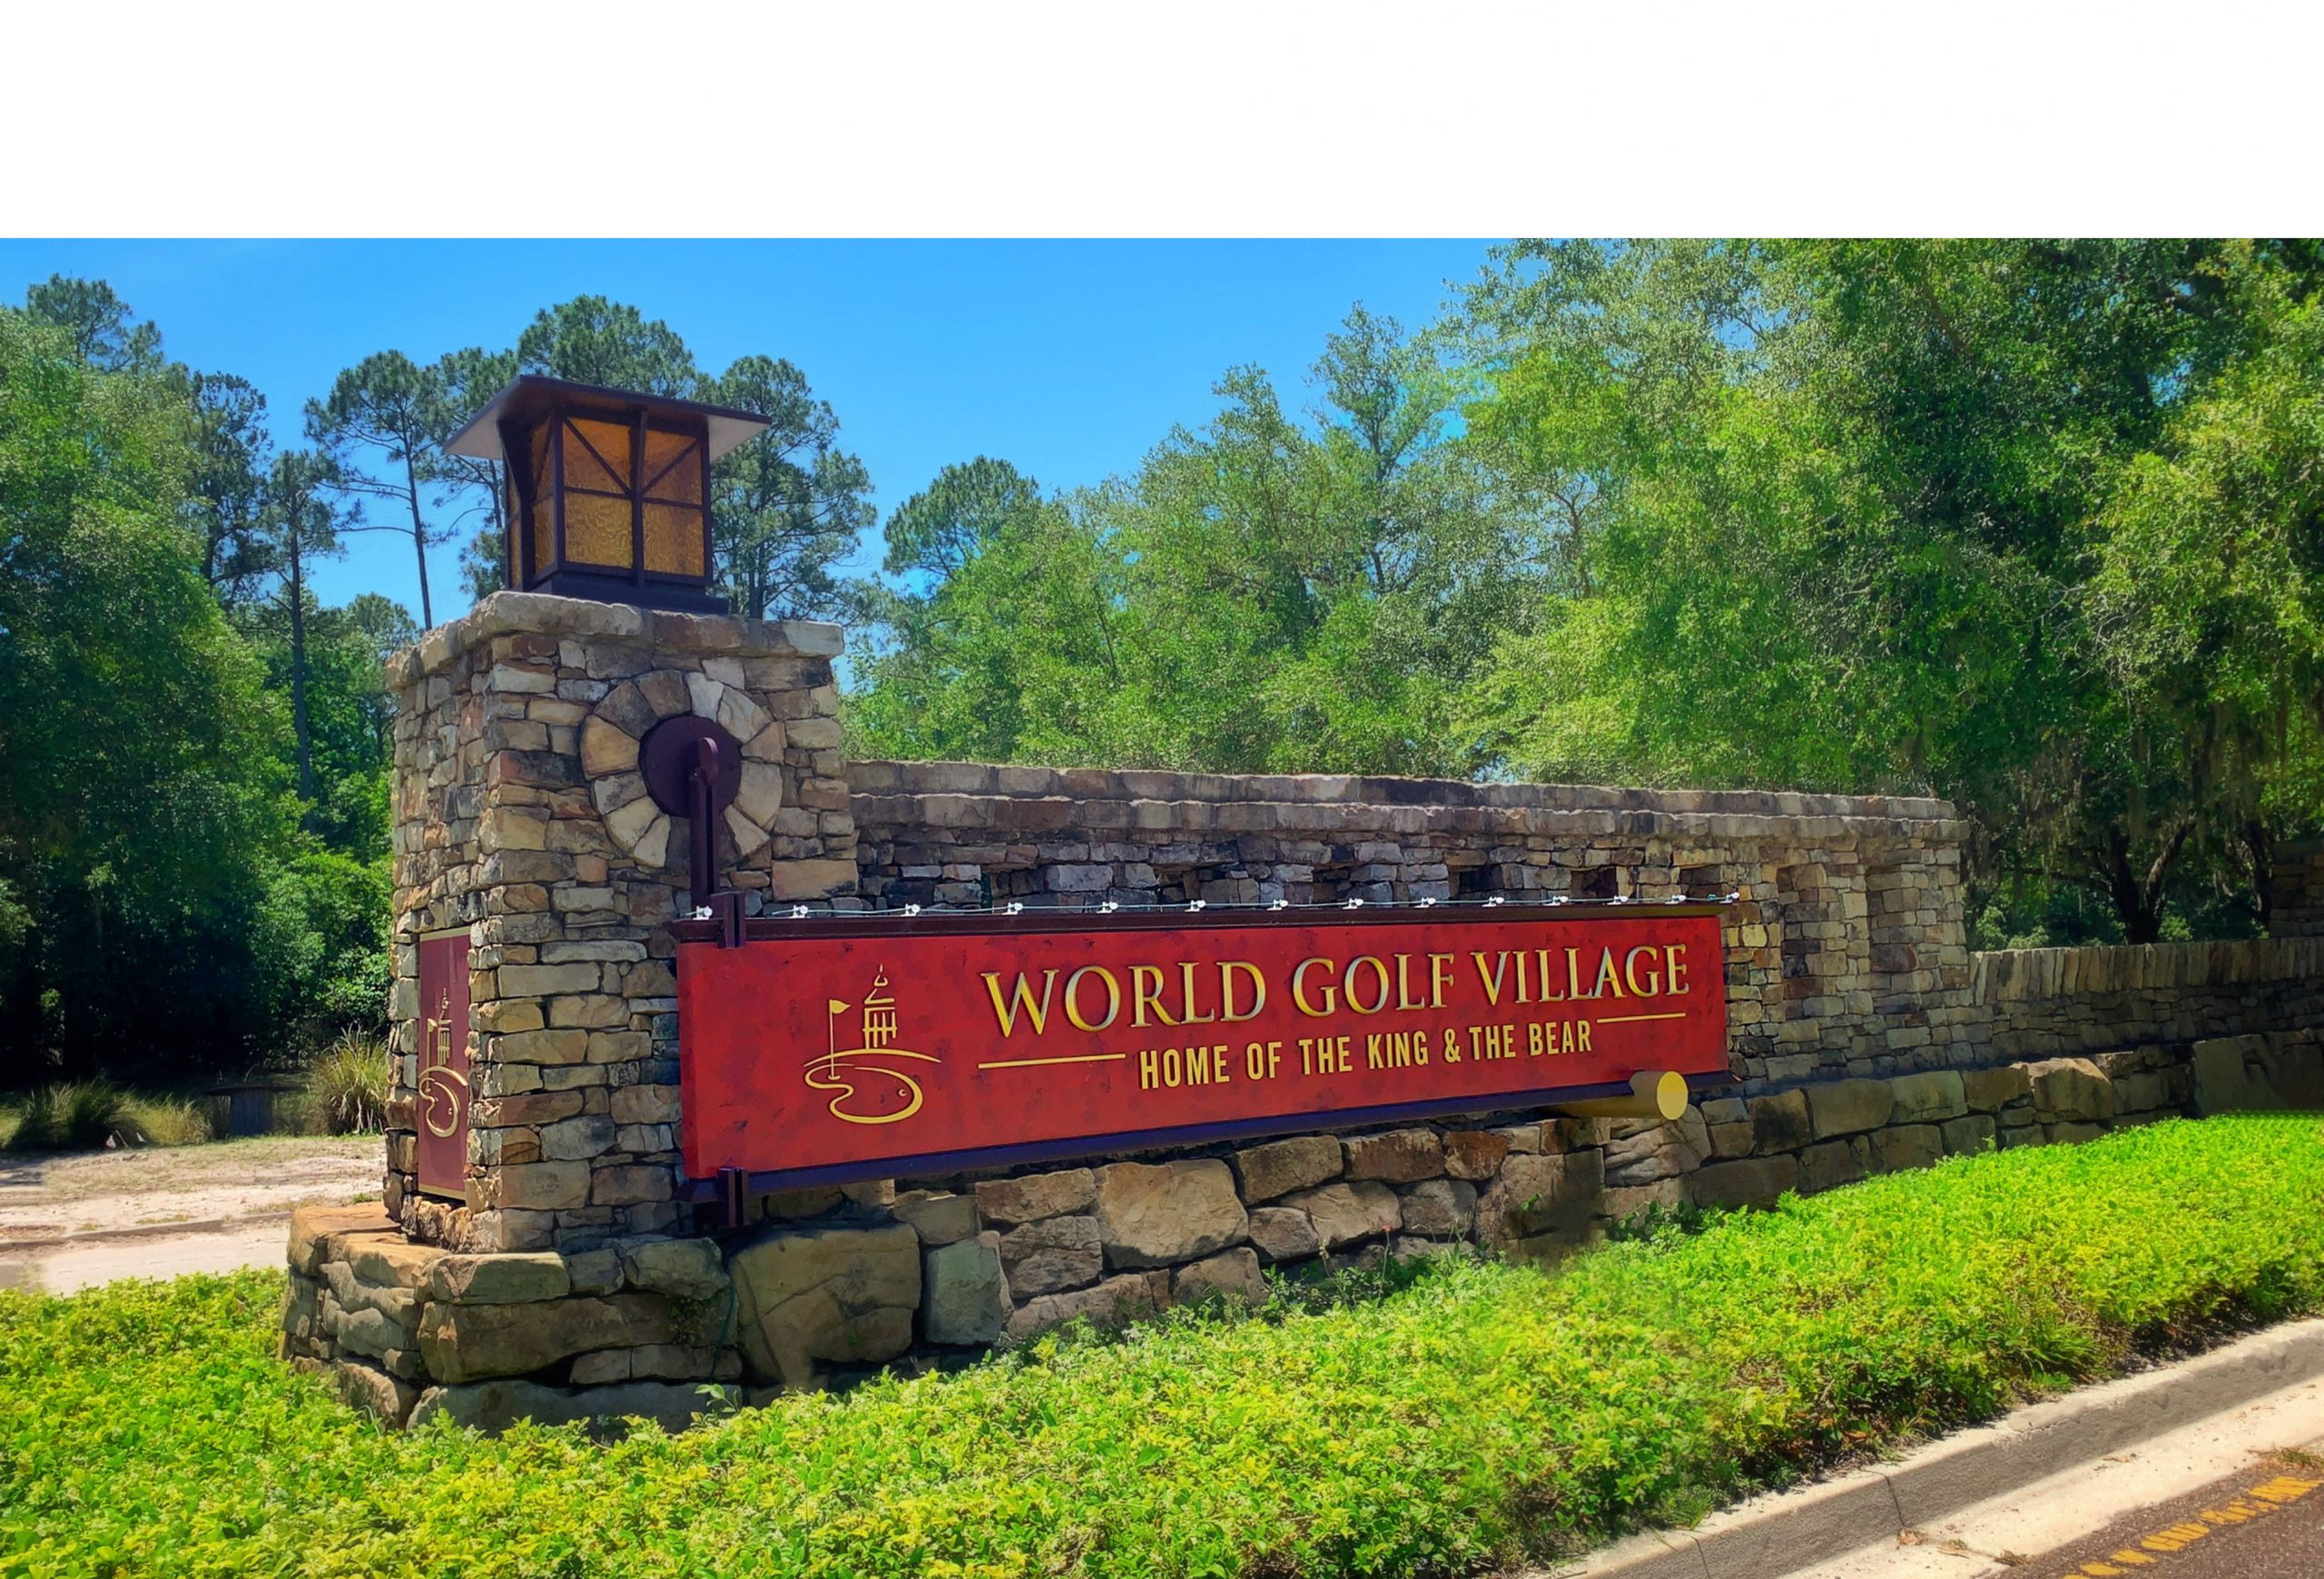 World Golf Village